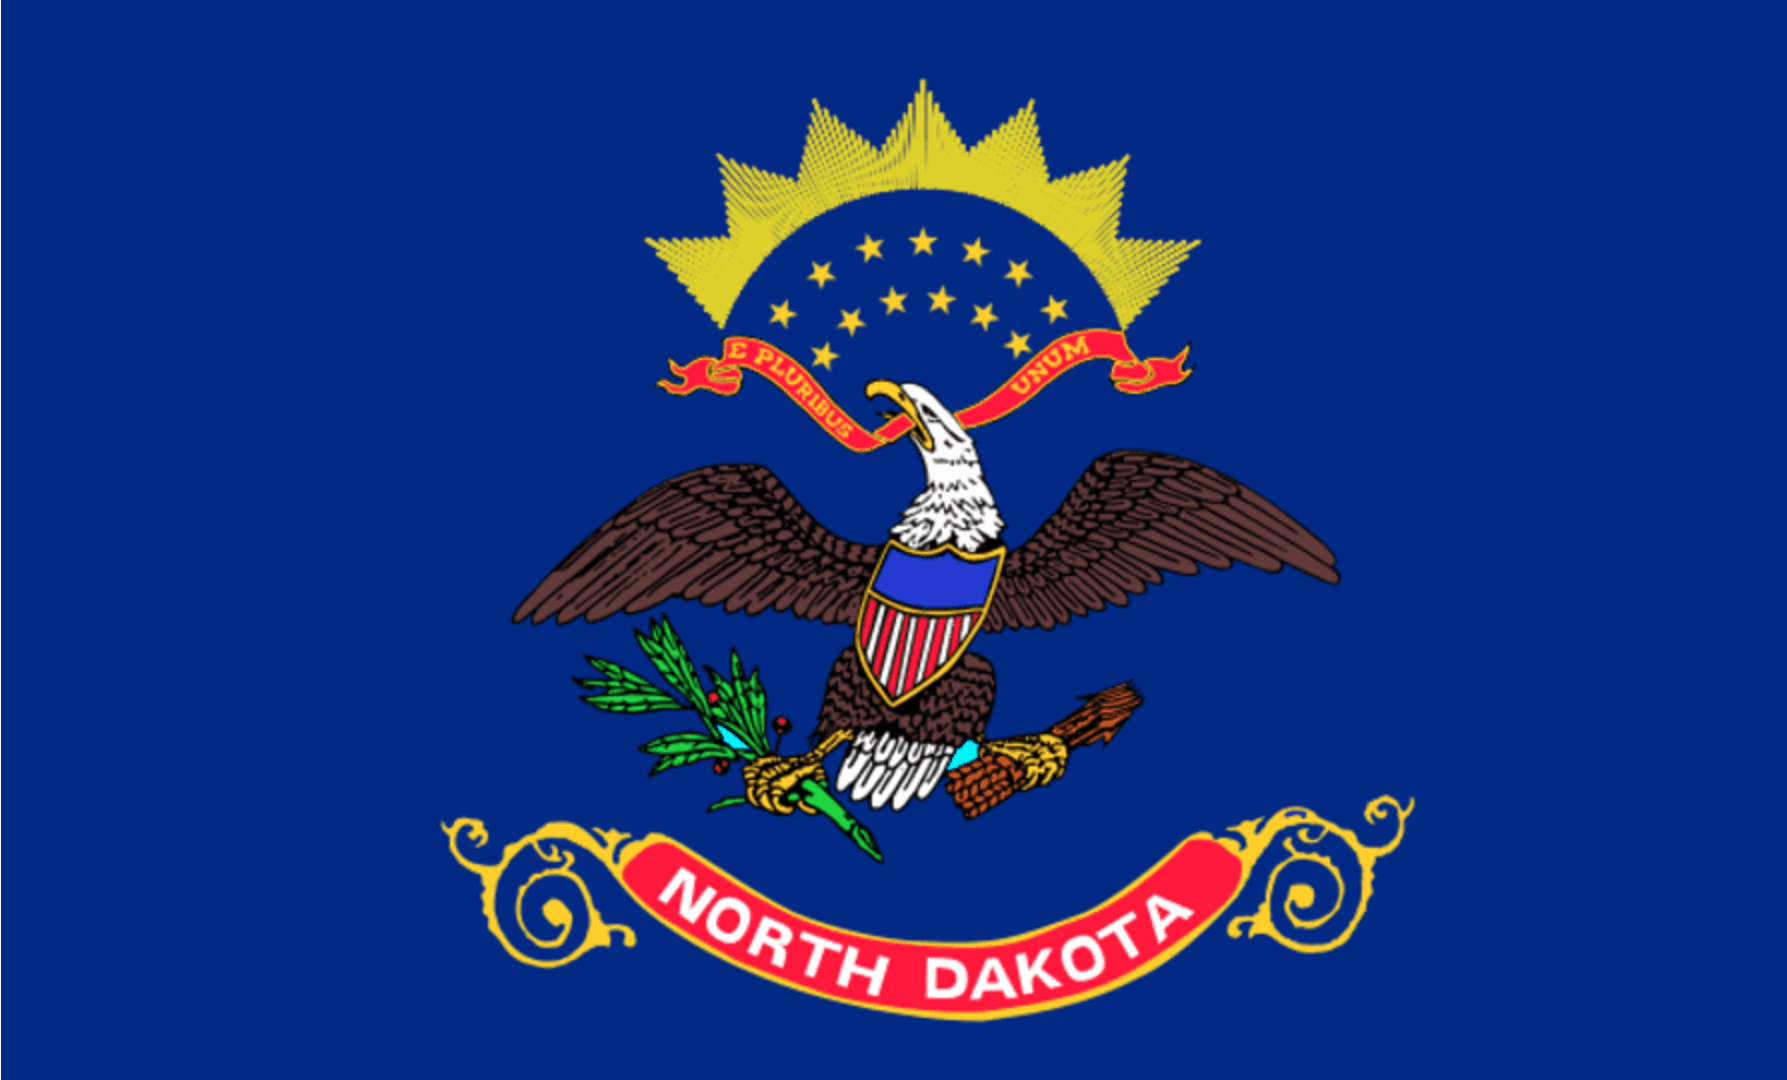 State flag of North Dakota